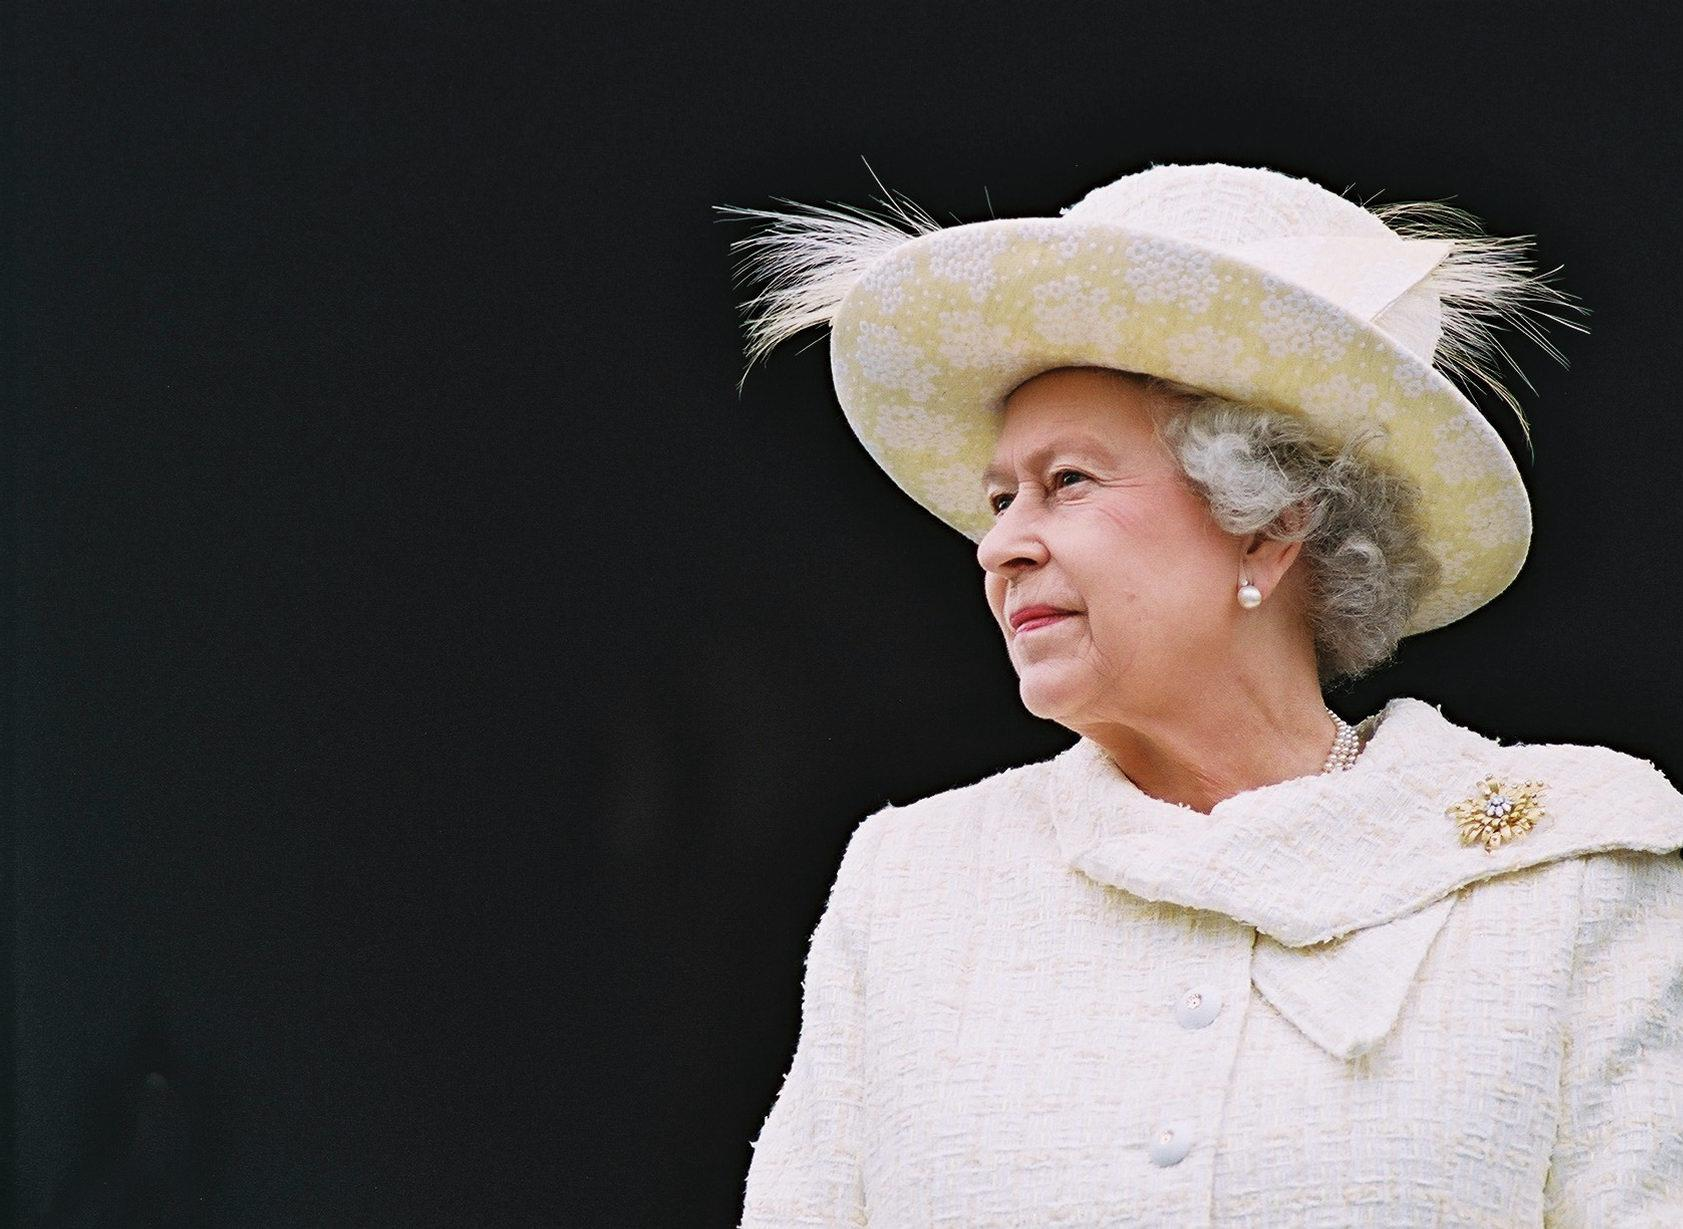 The Reign of Queen Elizabeth II - 63 years and counting, Elizabhet has the longest reign in British history